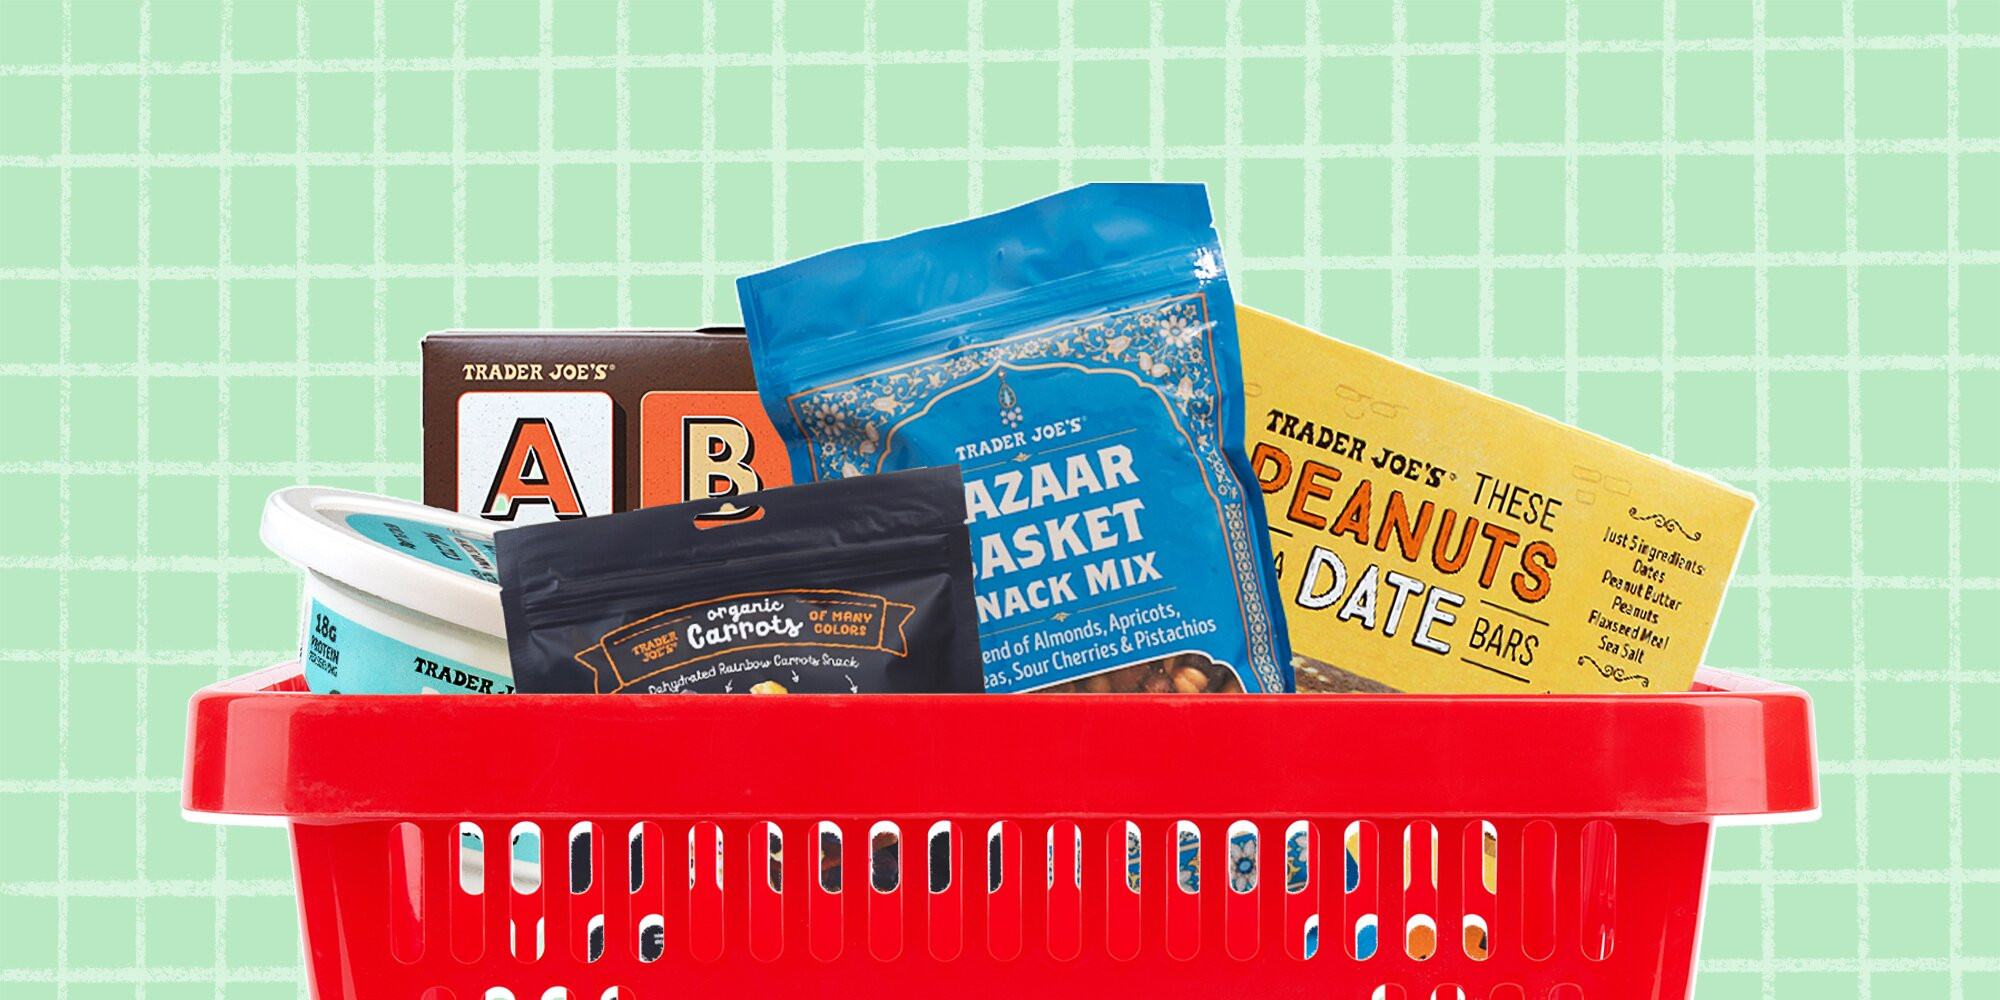 Best Healthy Snacks to Buy at Trader Joe's, According to a Dietitian